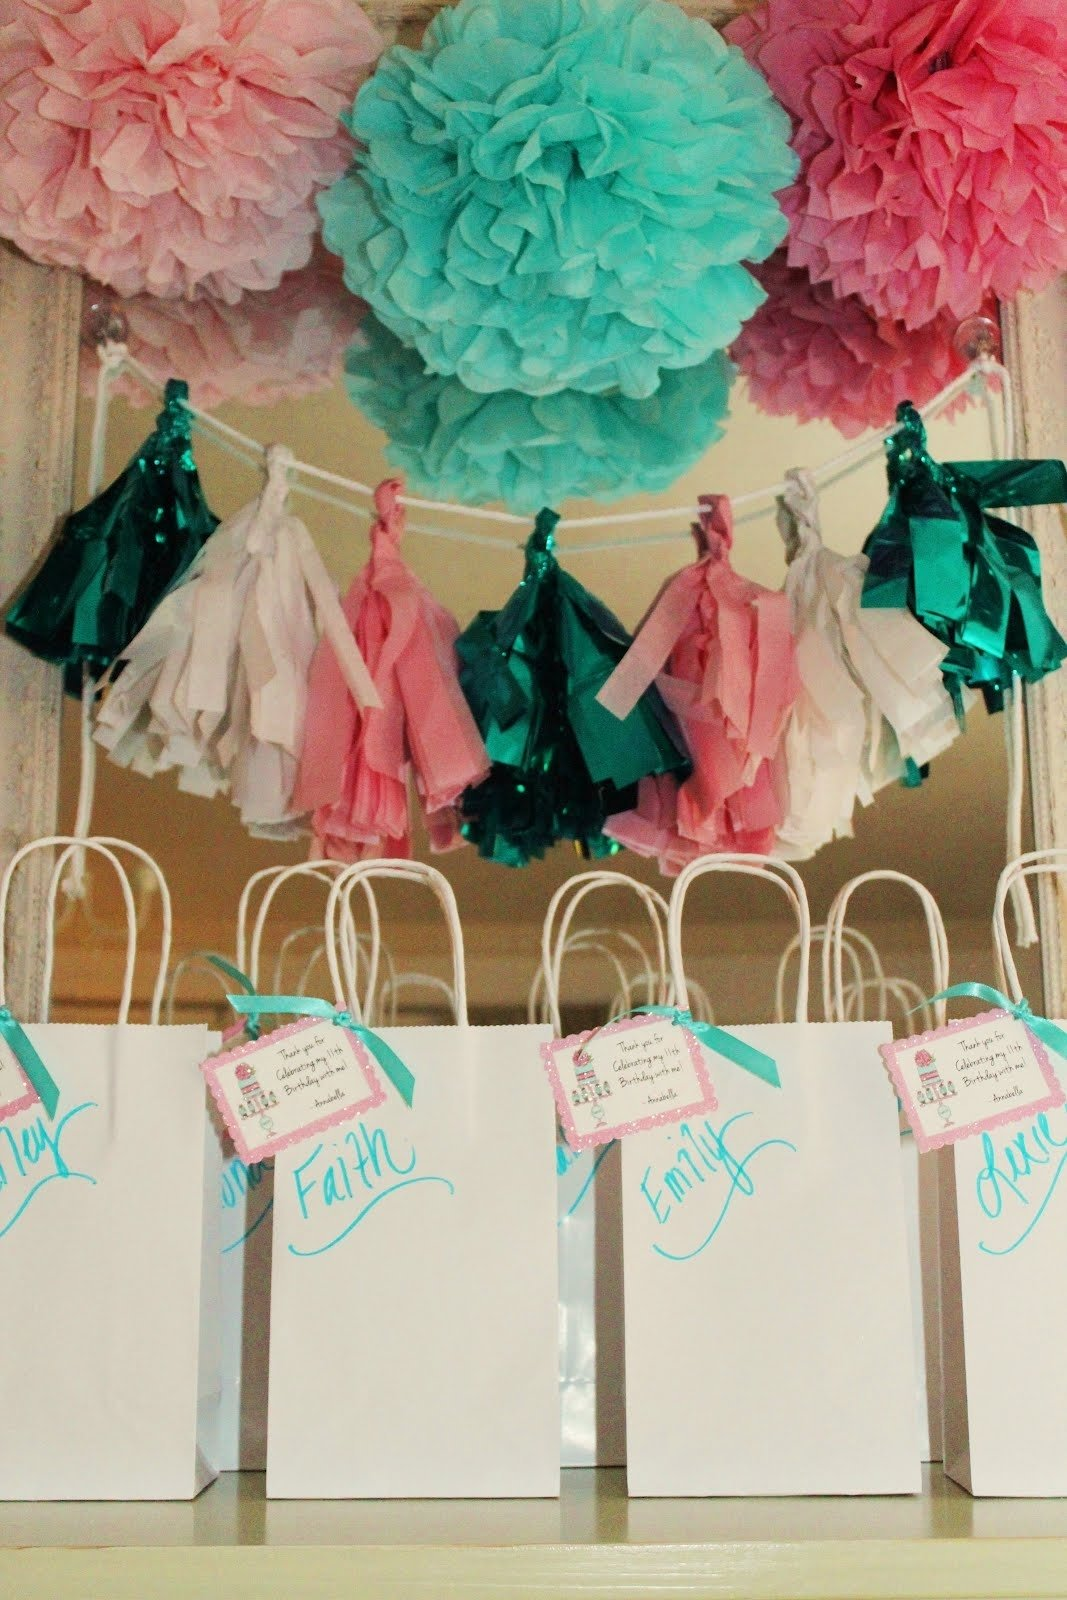 10 Lovely Ideas For 11 Year Old Birthday Party 11 year old birthday party ideas at home home design ideas 4 2020